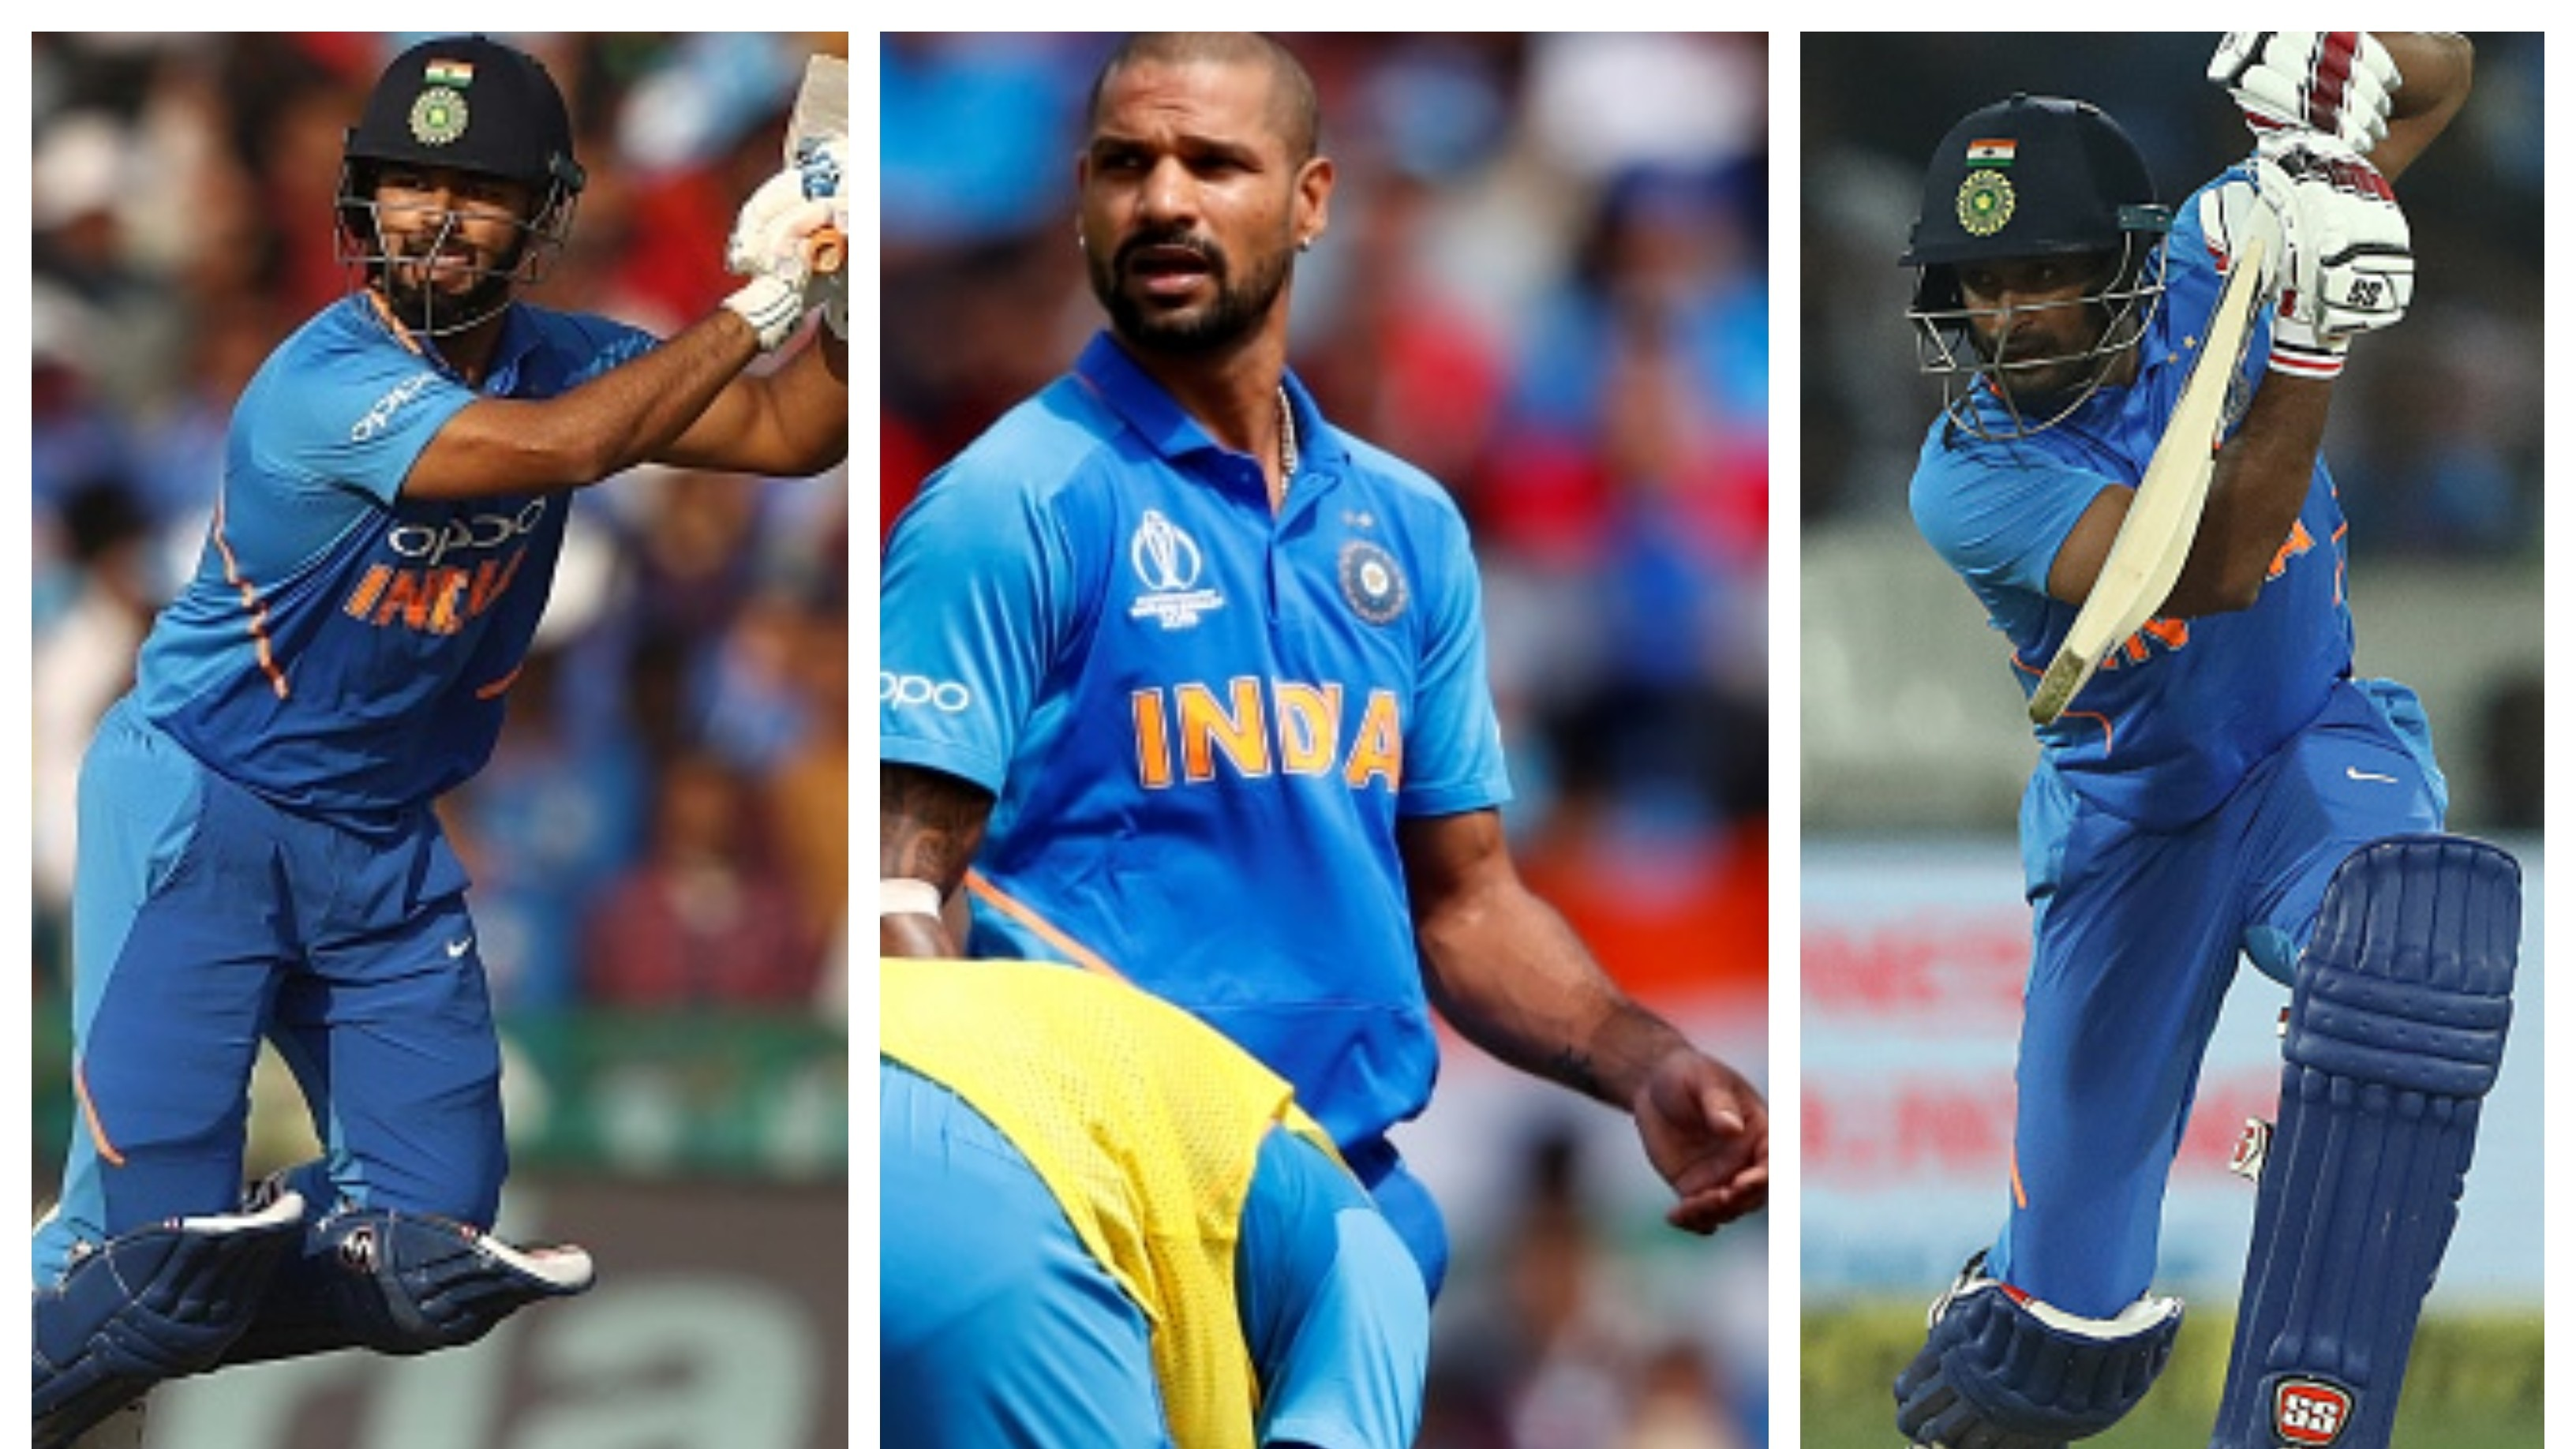 CWC 2019: Gavaskar, Pietersen bat for Pant's inclusion if Dhawan gets ruled out, Gambhir wants Rayudu